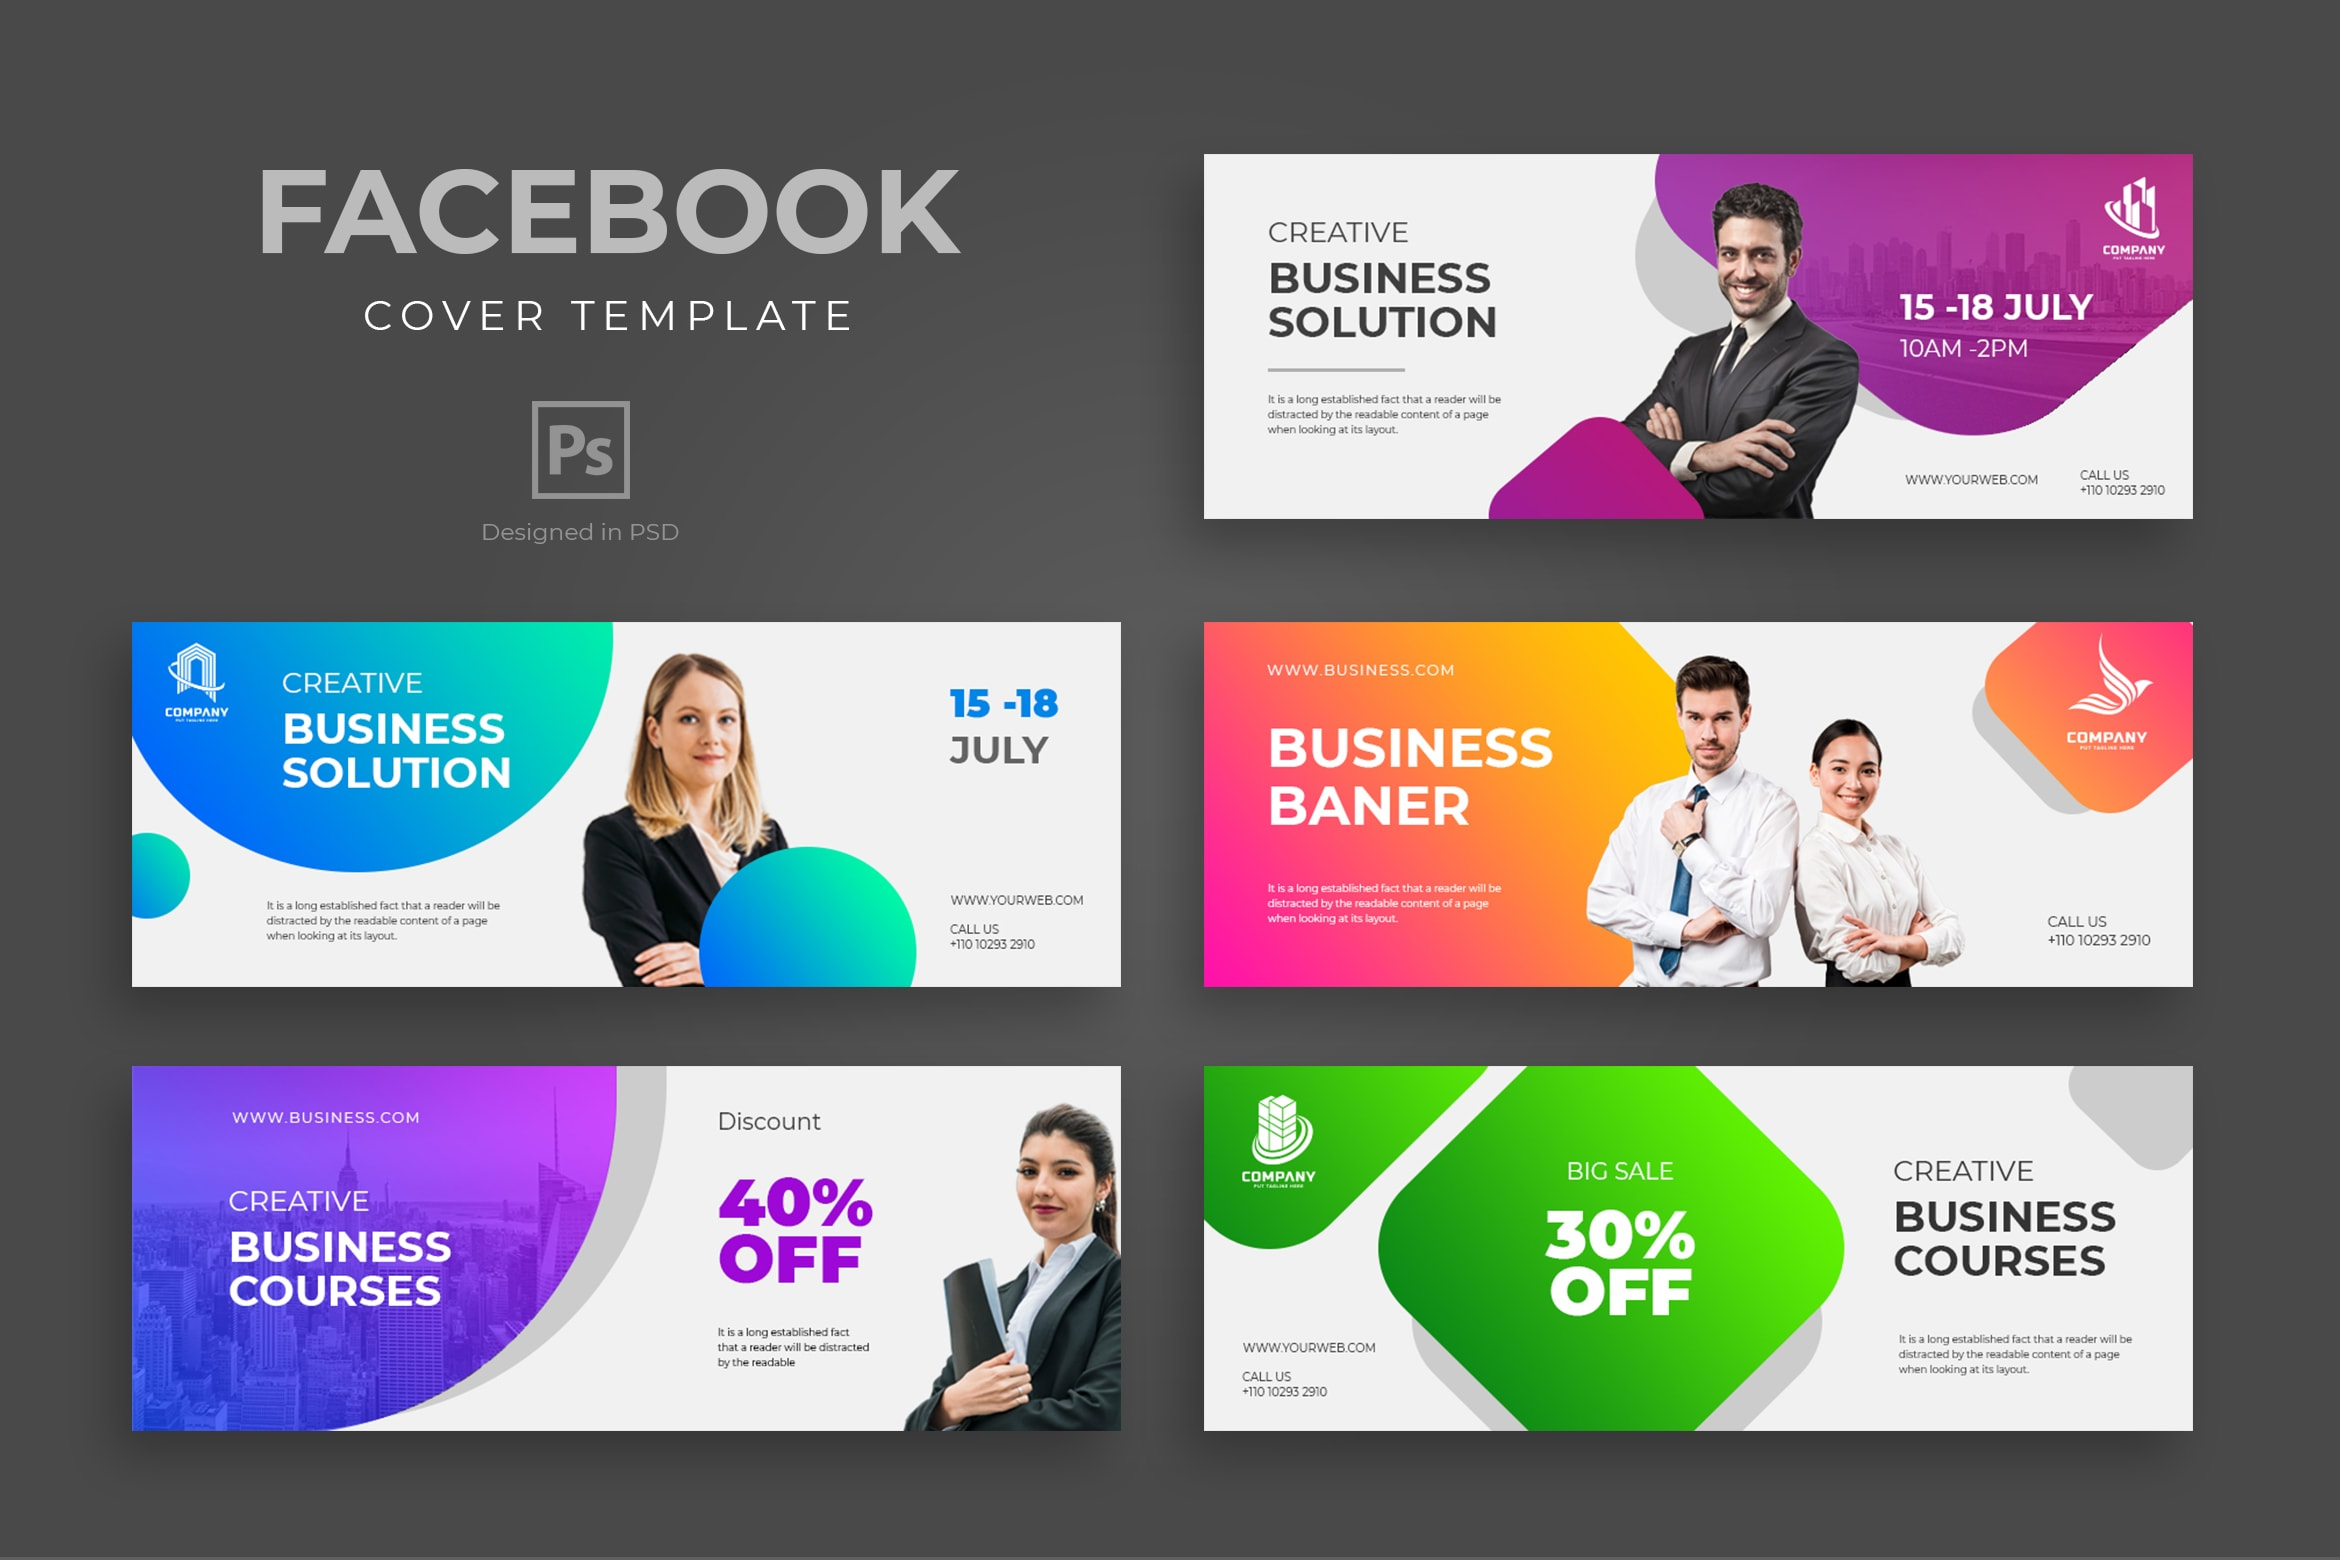 Facebook Cover - Creative Business Solution